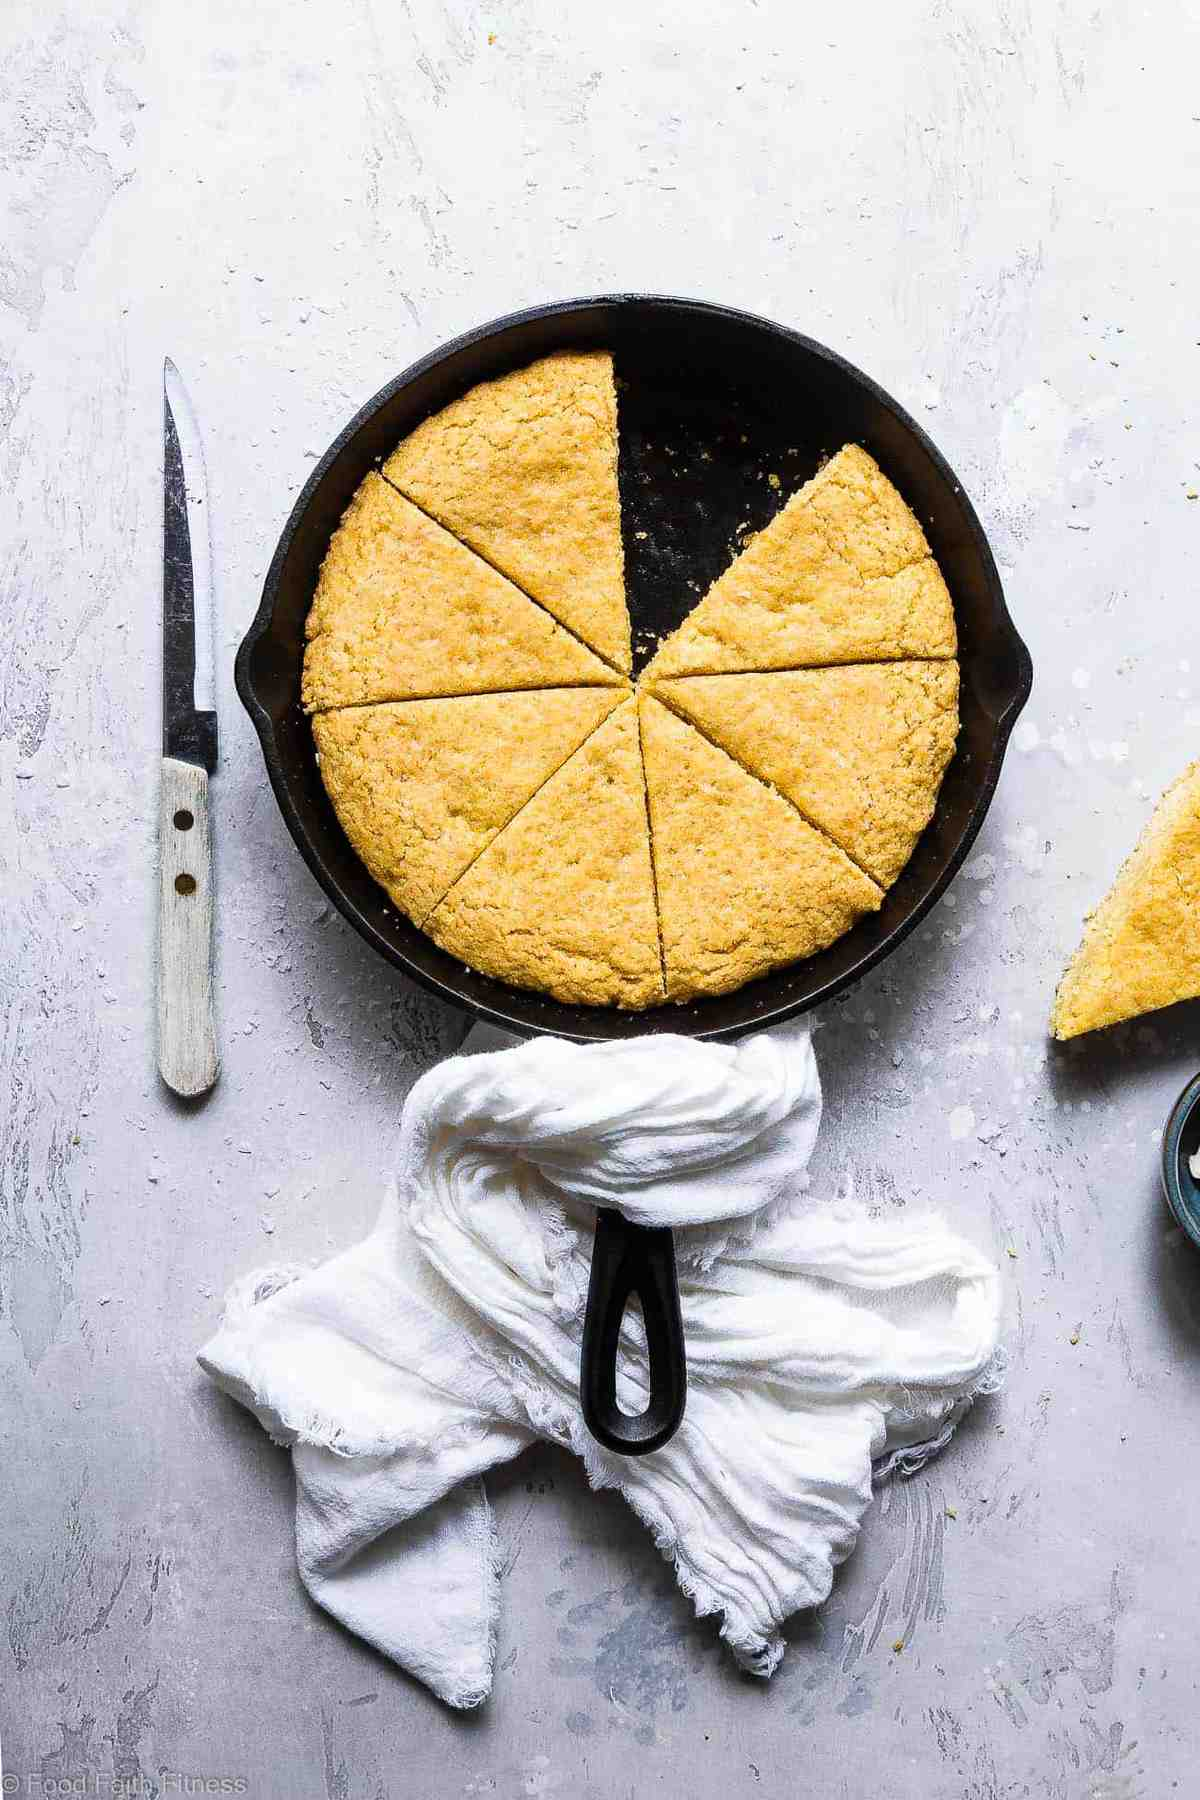 The Best Vegan Cornbread Recipe - This is the BEST gluten free, dairy free, egg free and vegan cornbread recipe! It's perfectly sweet, dense and SO chewy, you will never believe it's healthy and SO easy to make! | #Foodfaithfitness | #Glutenfree #Vegan #Dairyfree #Eggfree #Cornbread